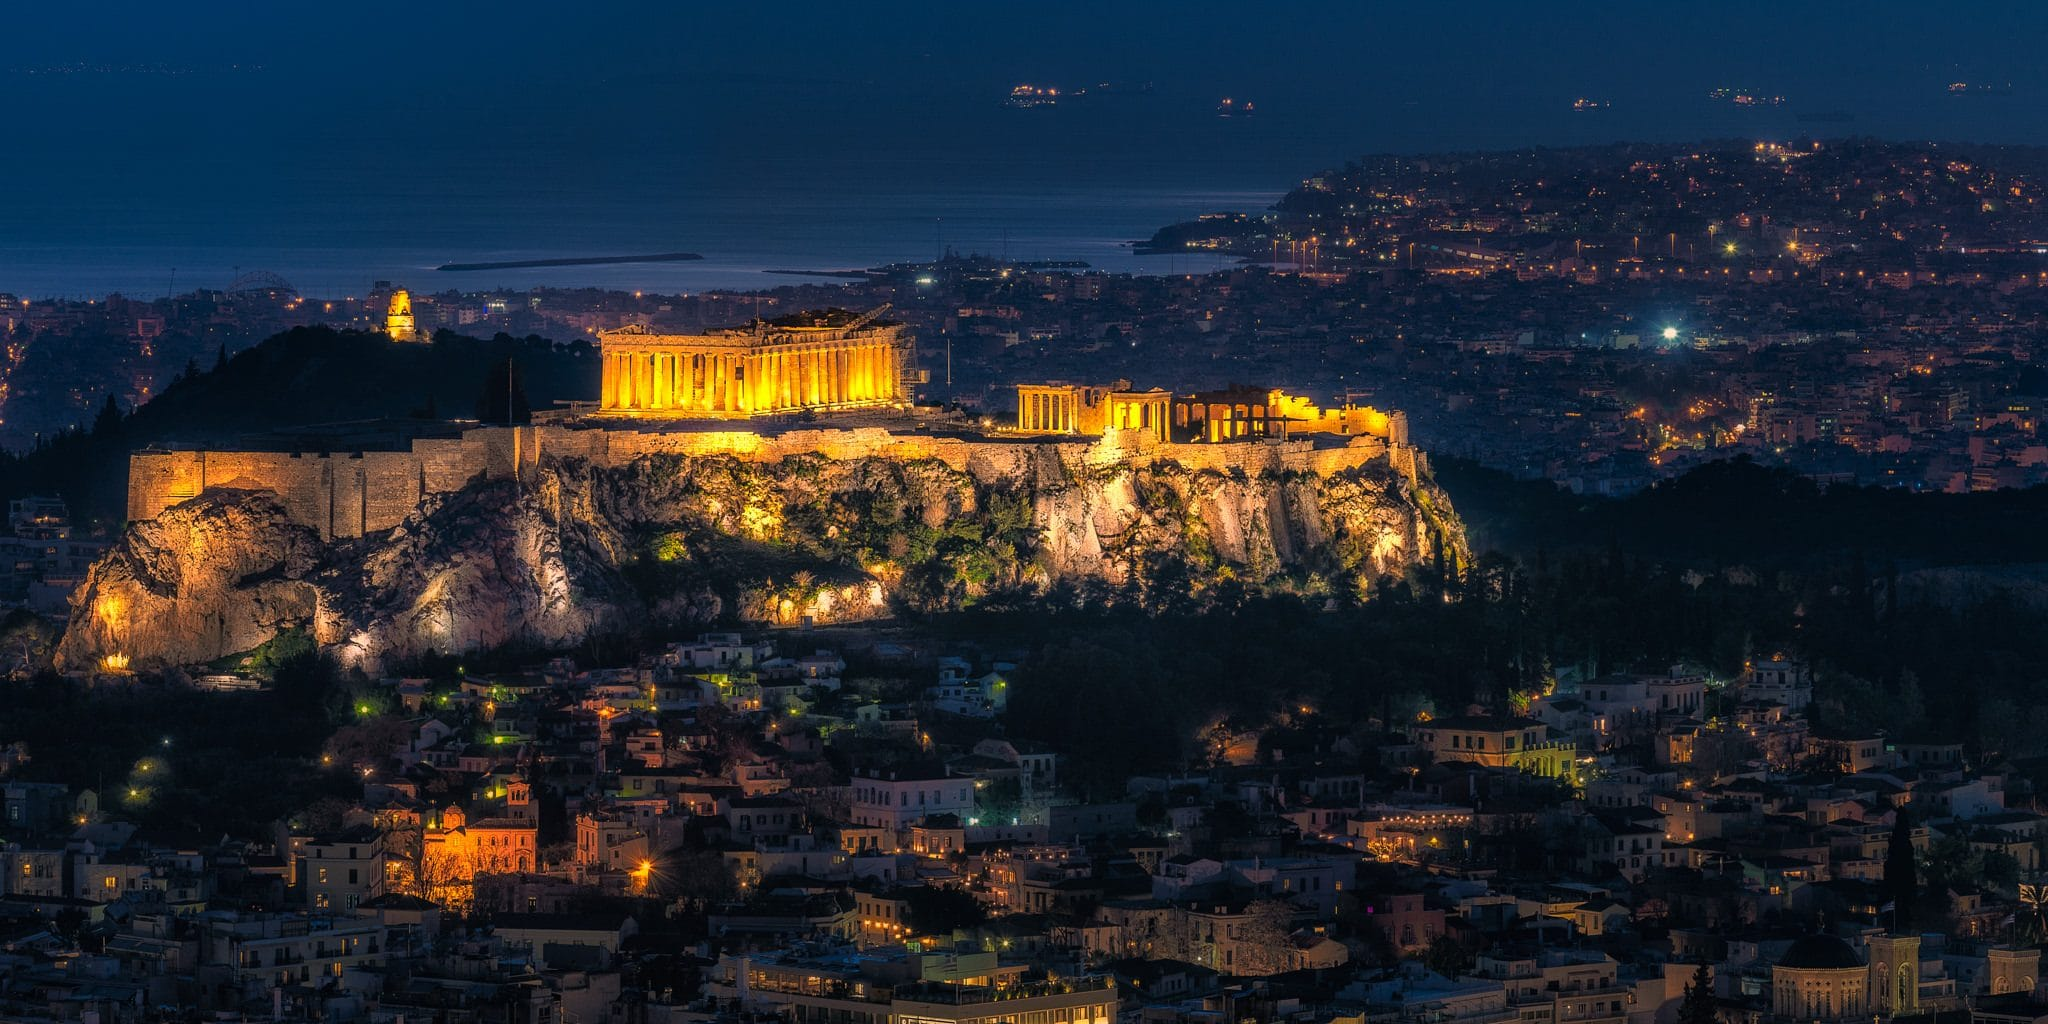 A panorama view of Acropolis in Athens with Parthenon Temple.